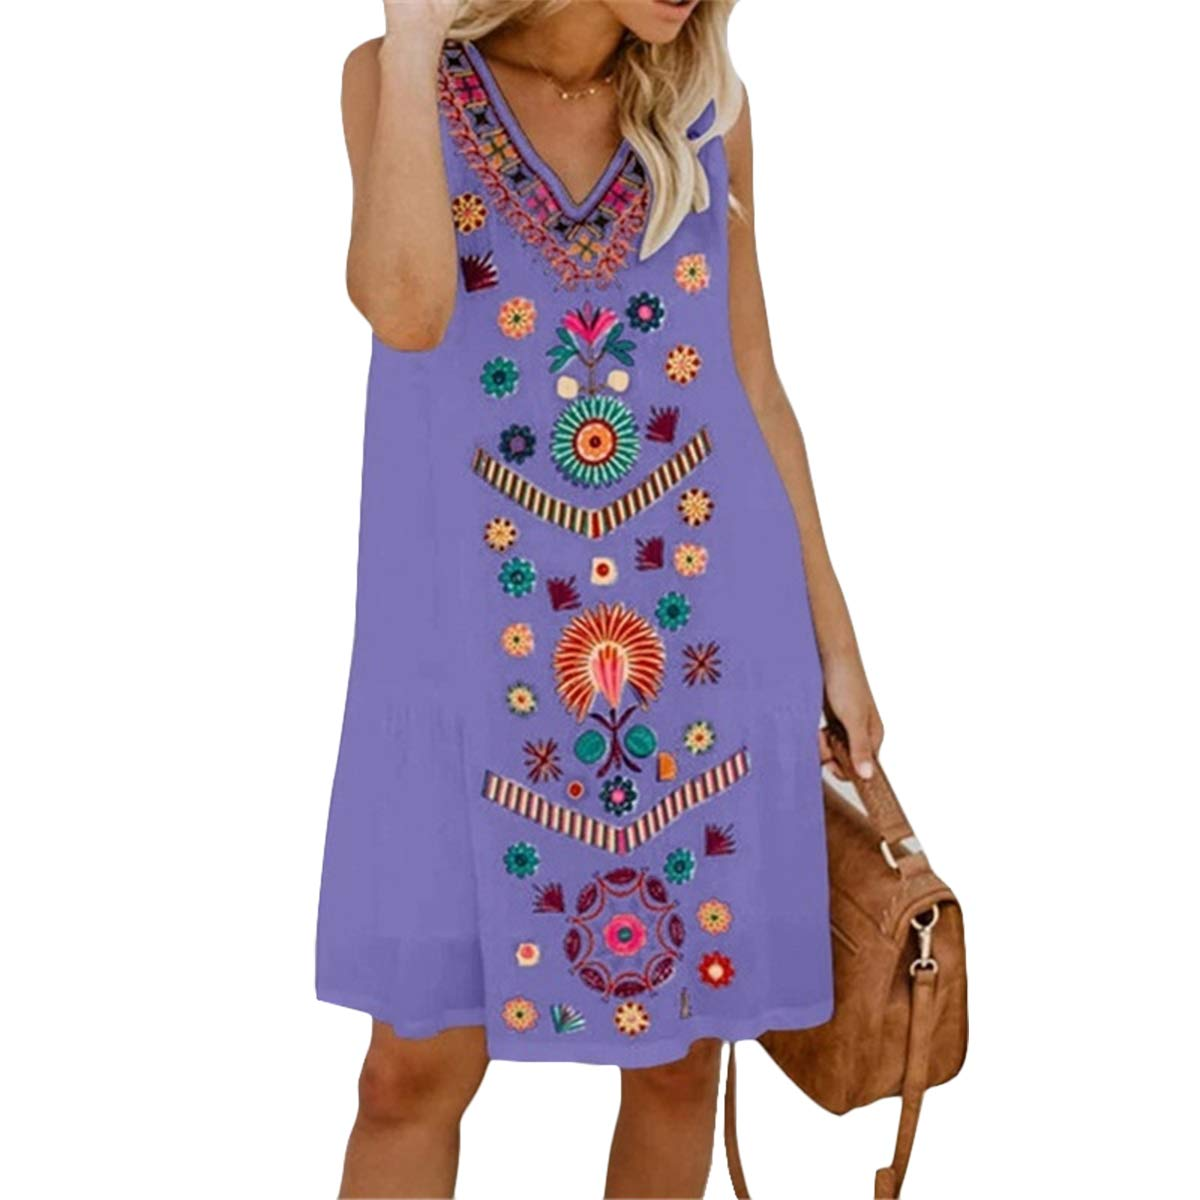 AELSON Womens Summer Casual V Neck Sleeveless Tank Tops Printed Floral A Line Short Dress Purple